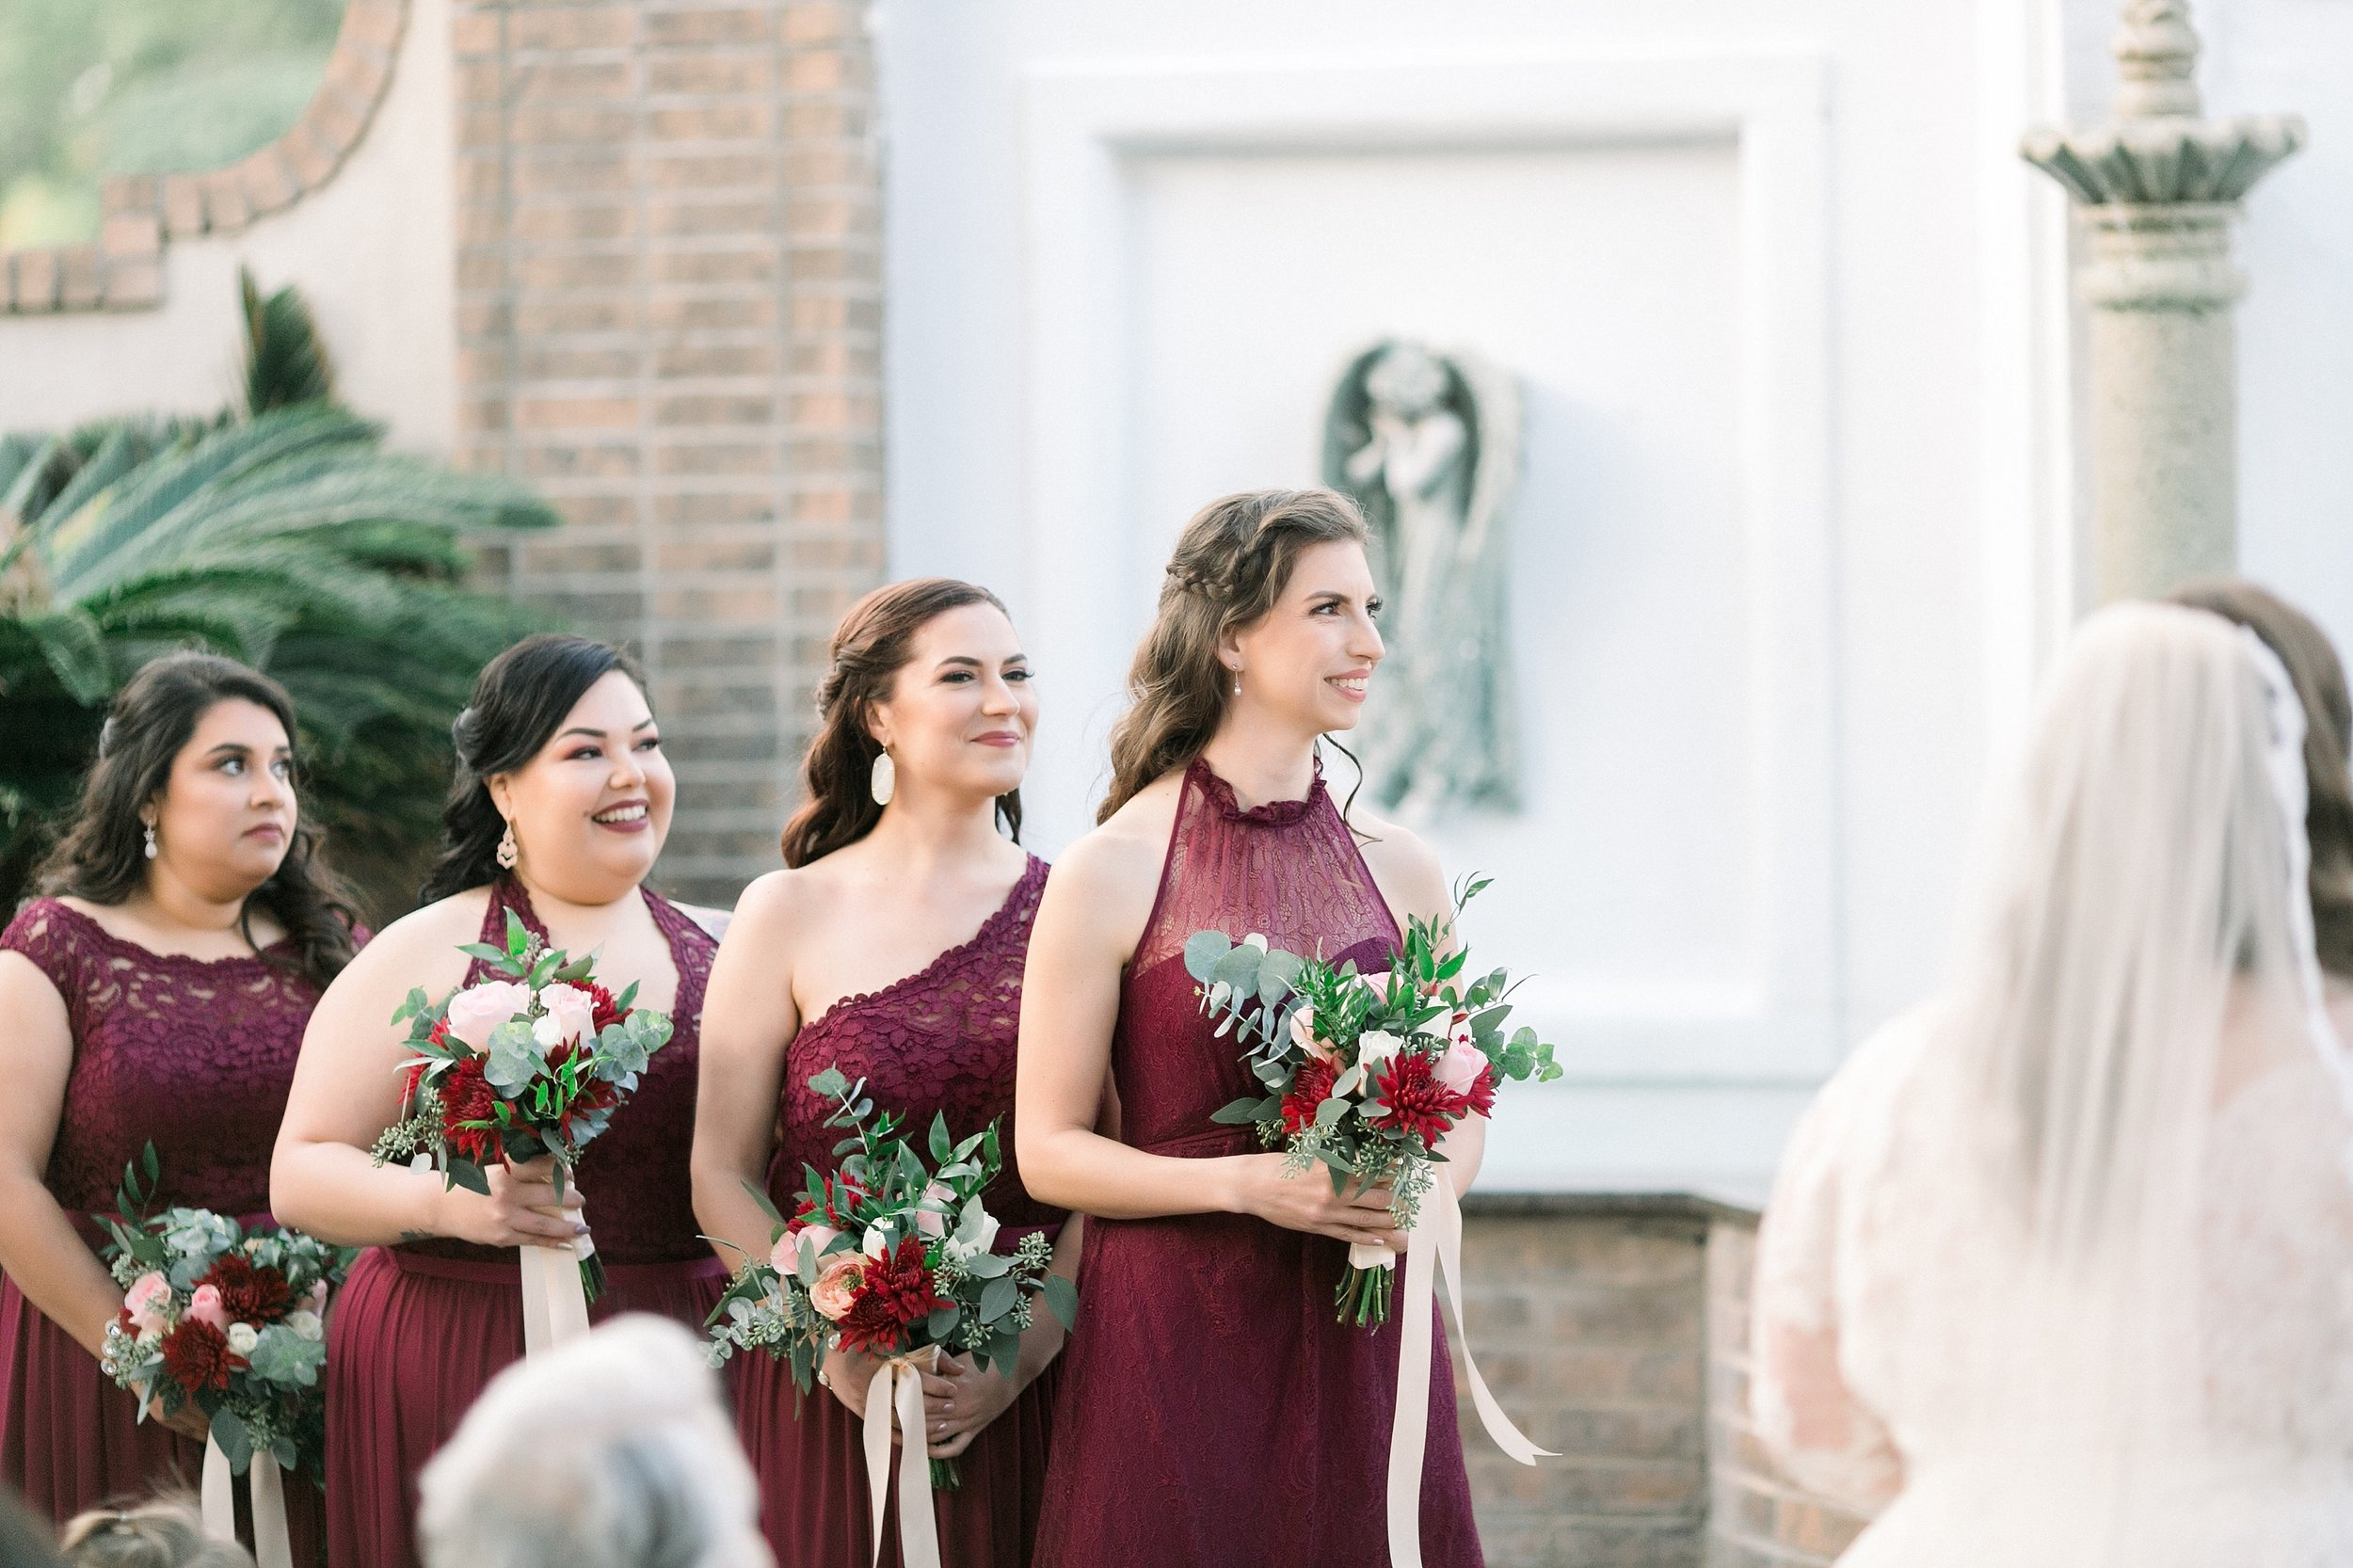 gaslight-at-courtyard-square-corpus-christi-wedding-omni-hotel-fall-winter-wedding-texas-wedding-photographer-lauren-pinson-0066.jpg